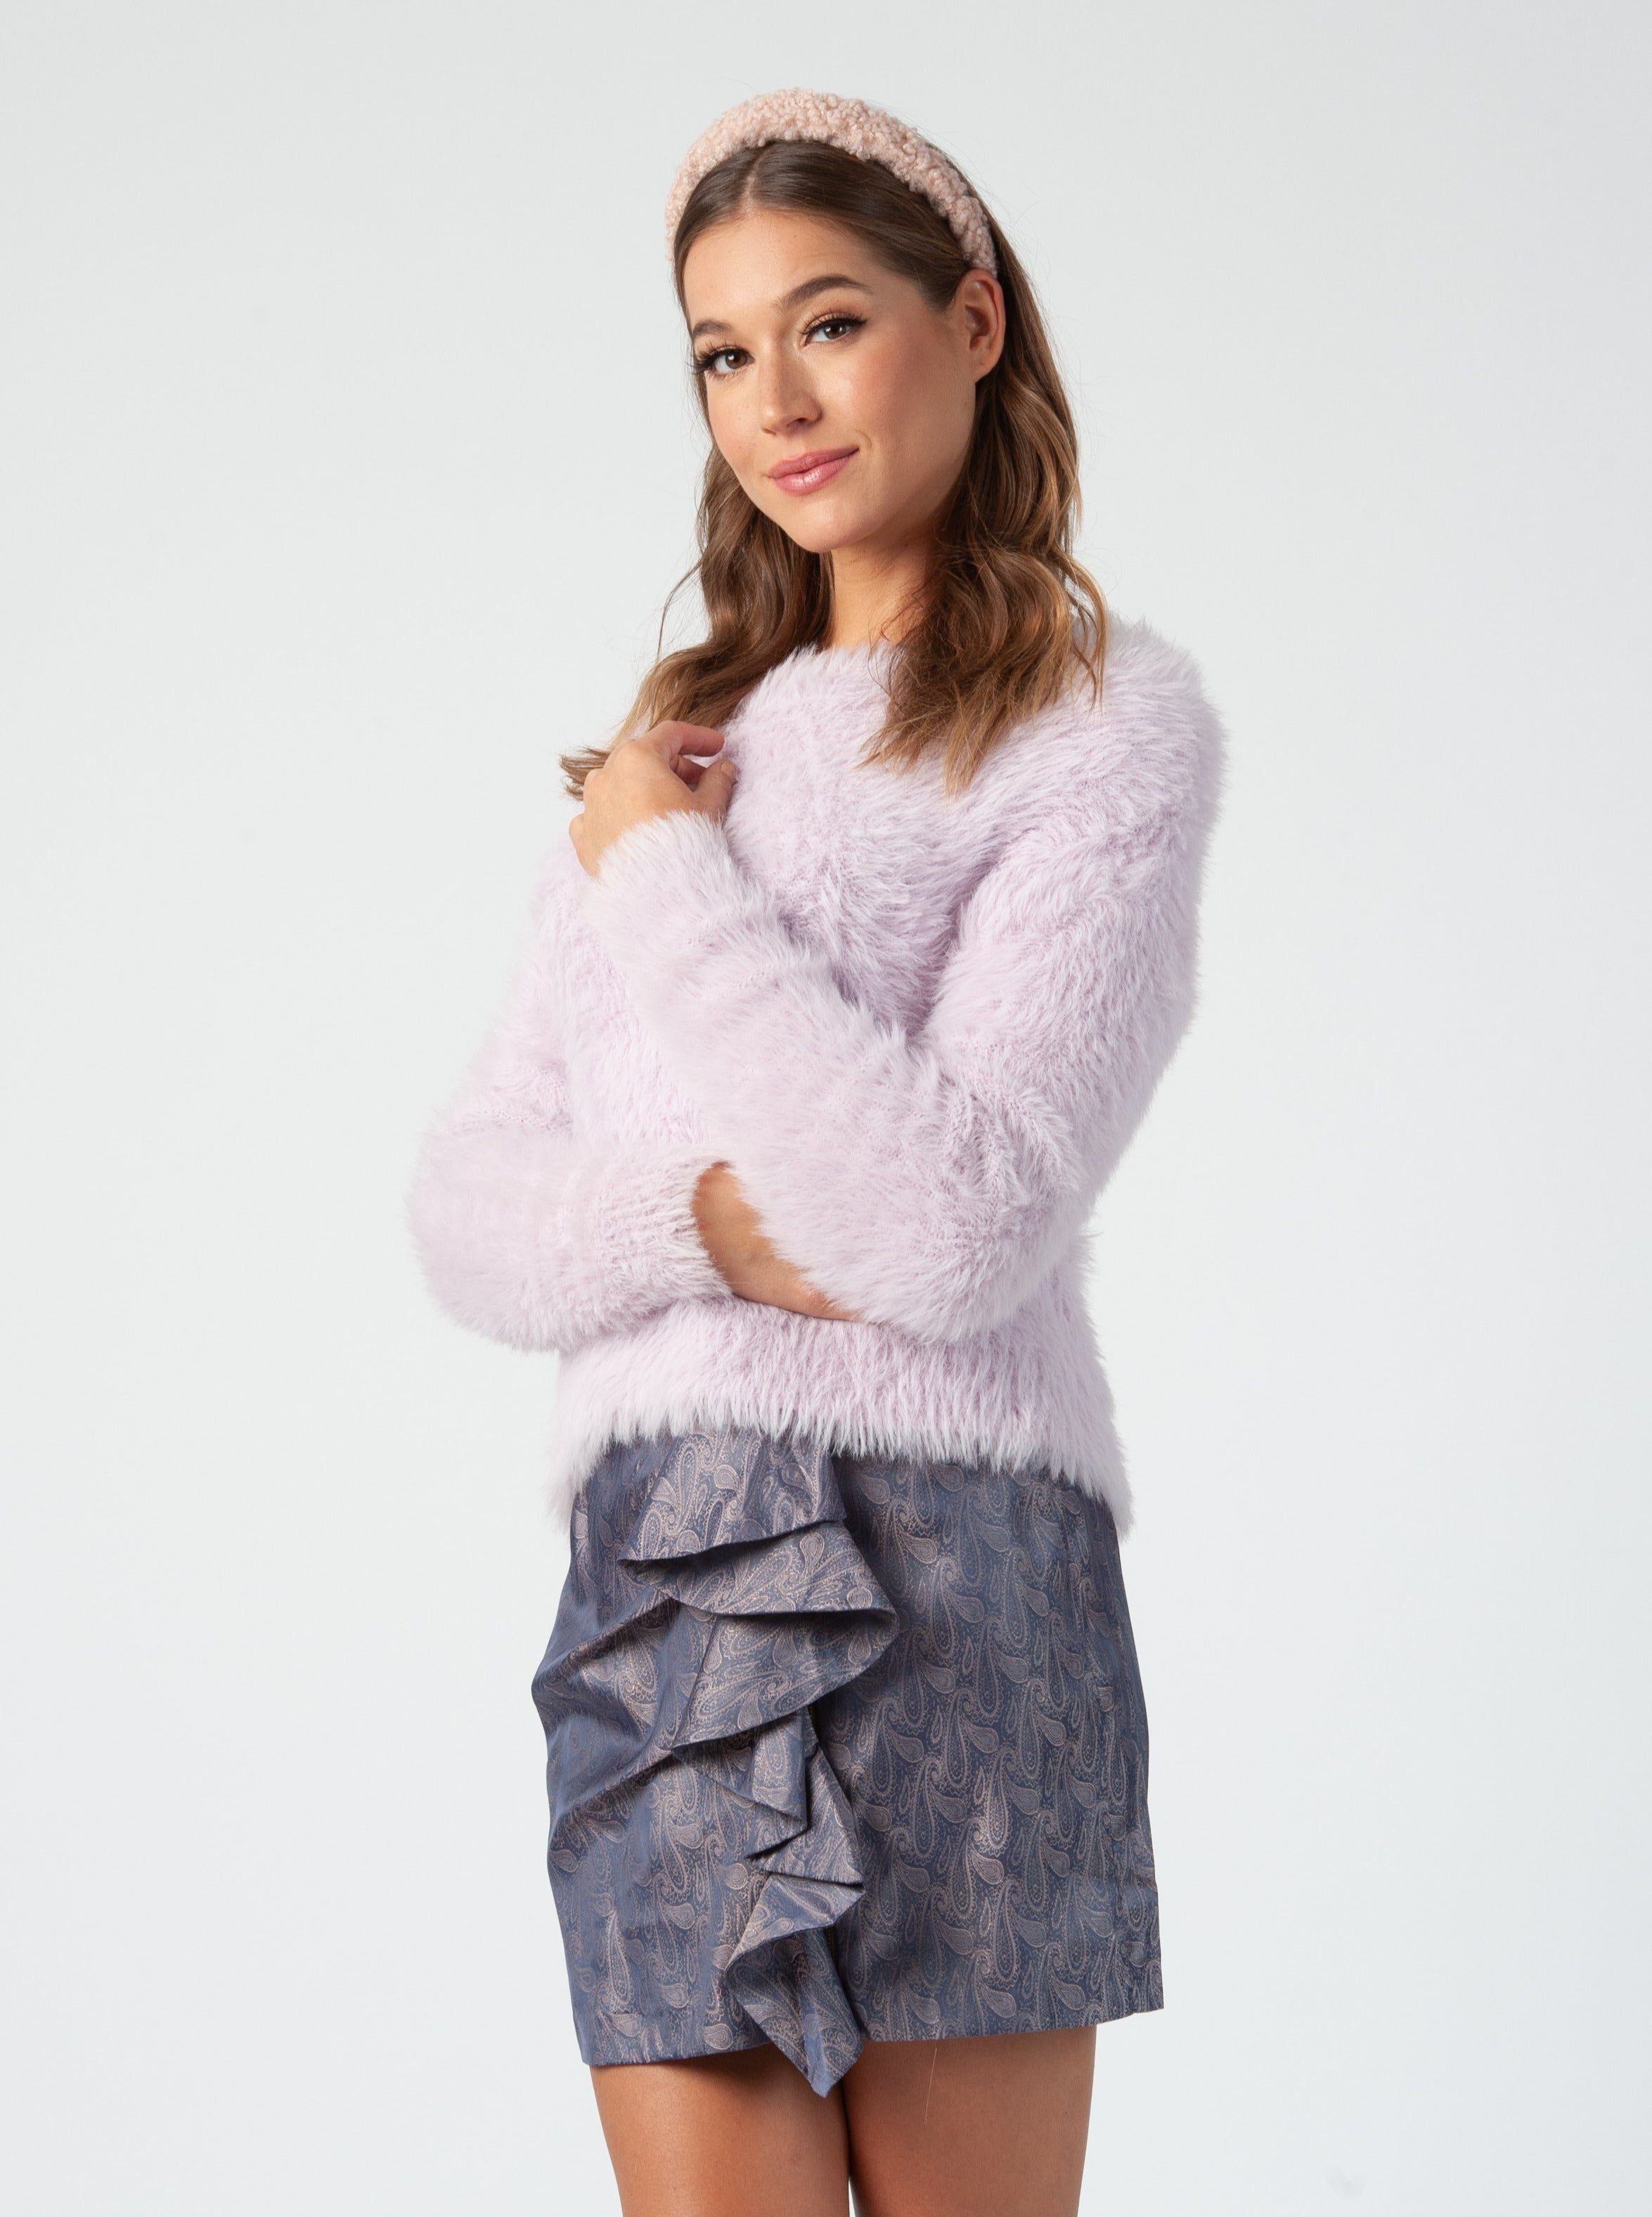 PAIGE PAISLEY IRIDESCENT FRONT RUFFLE SKIRT